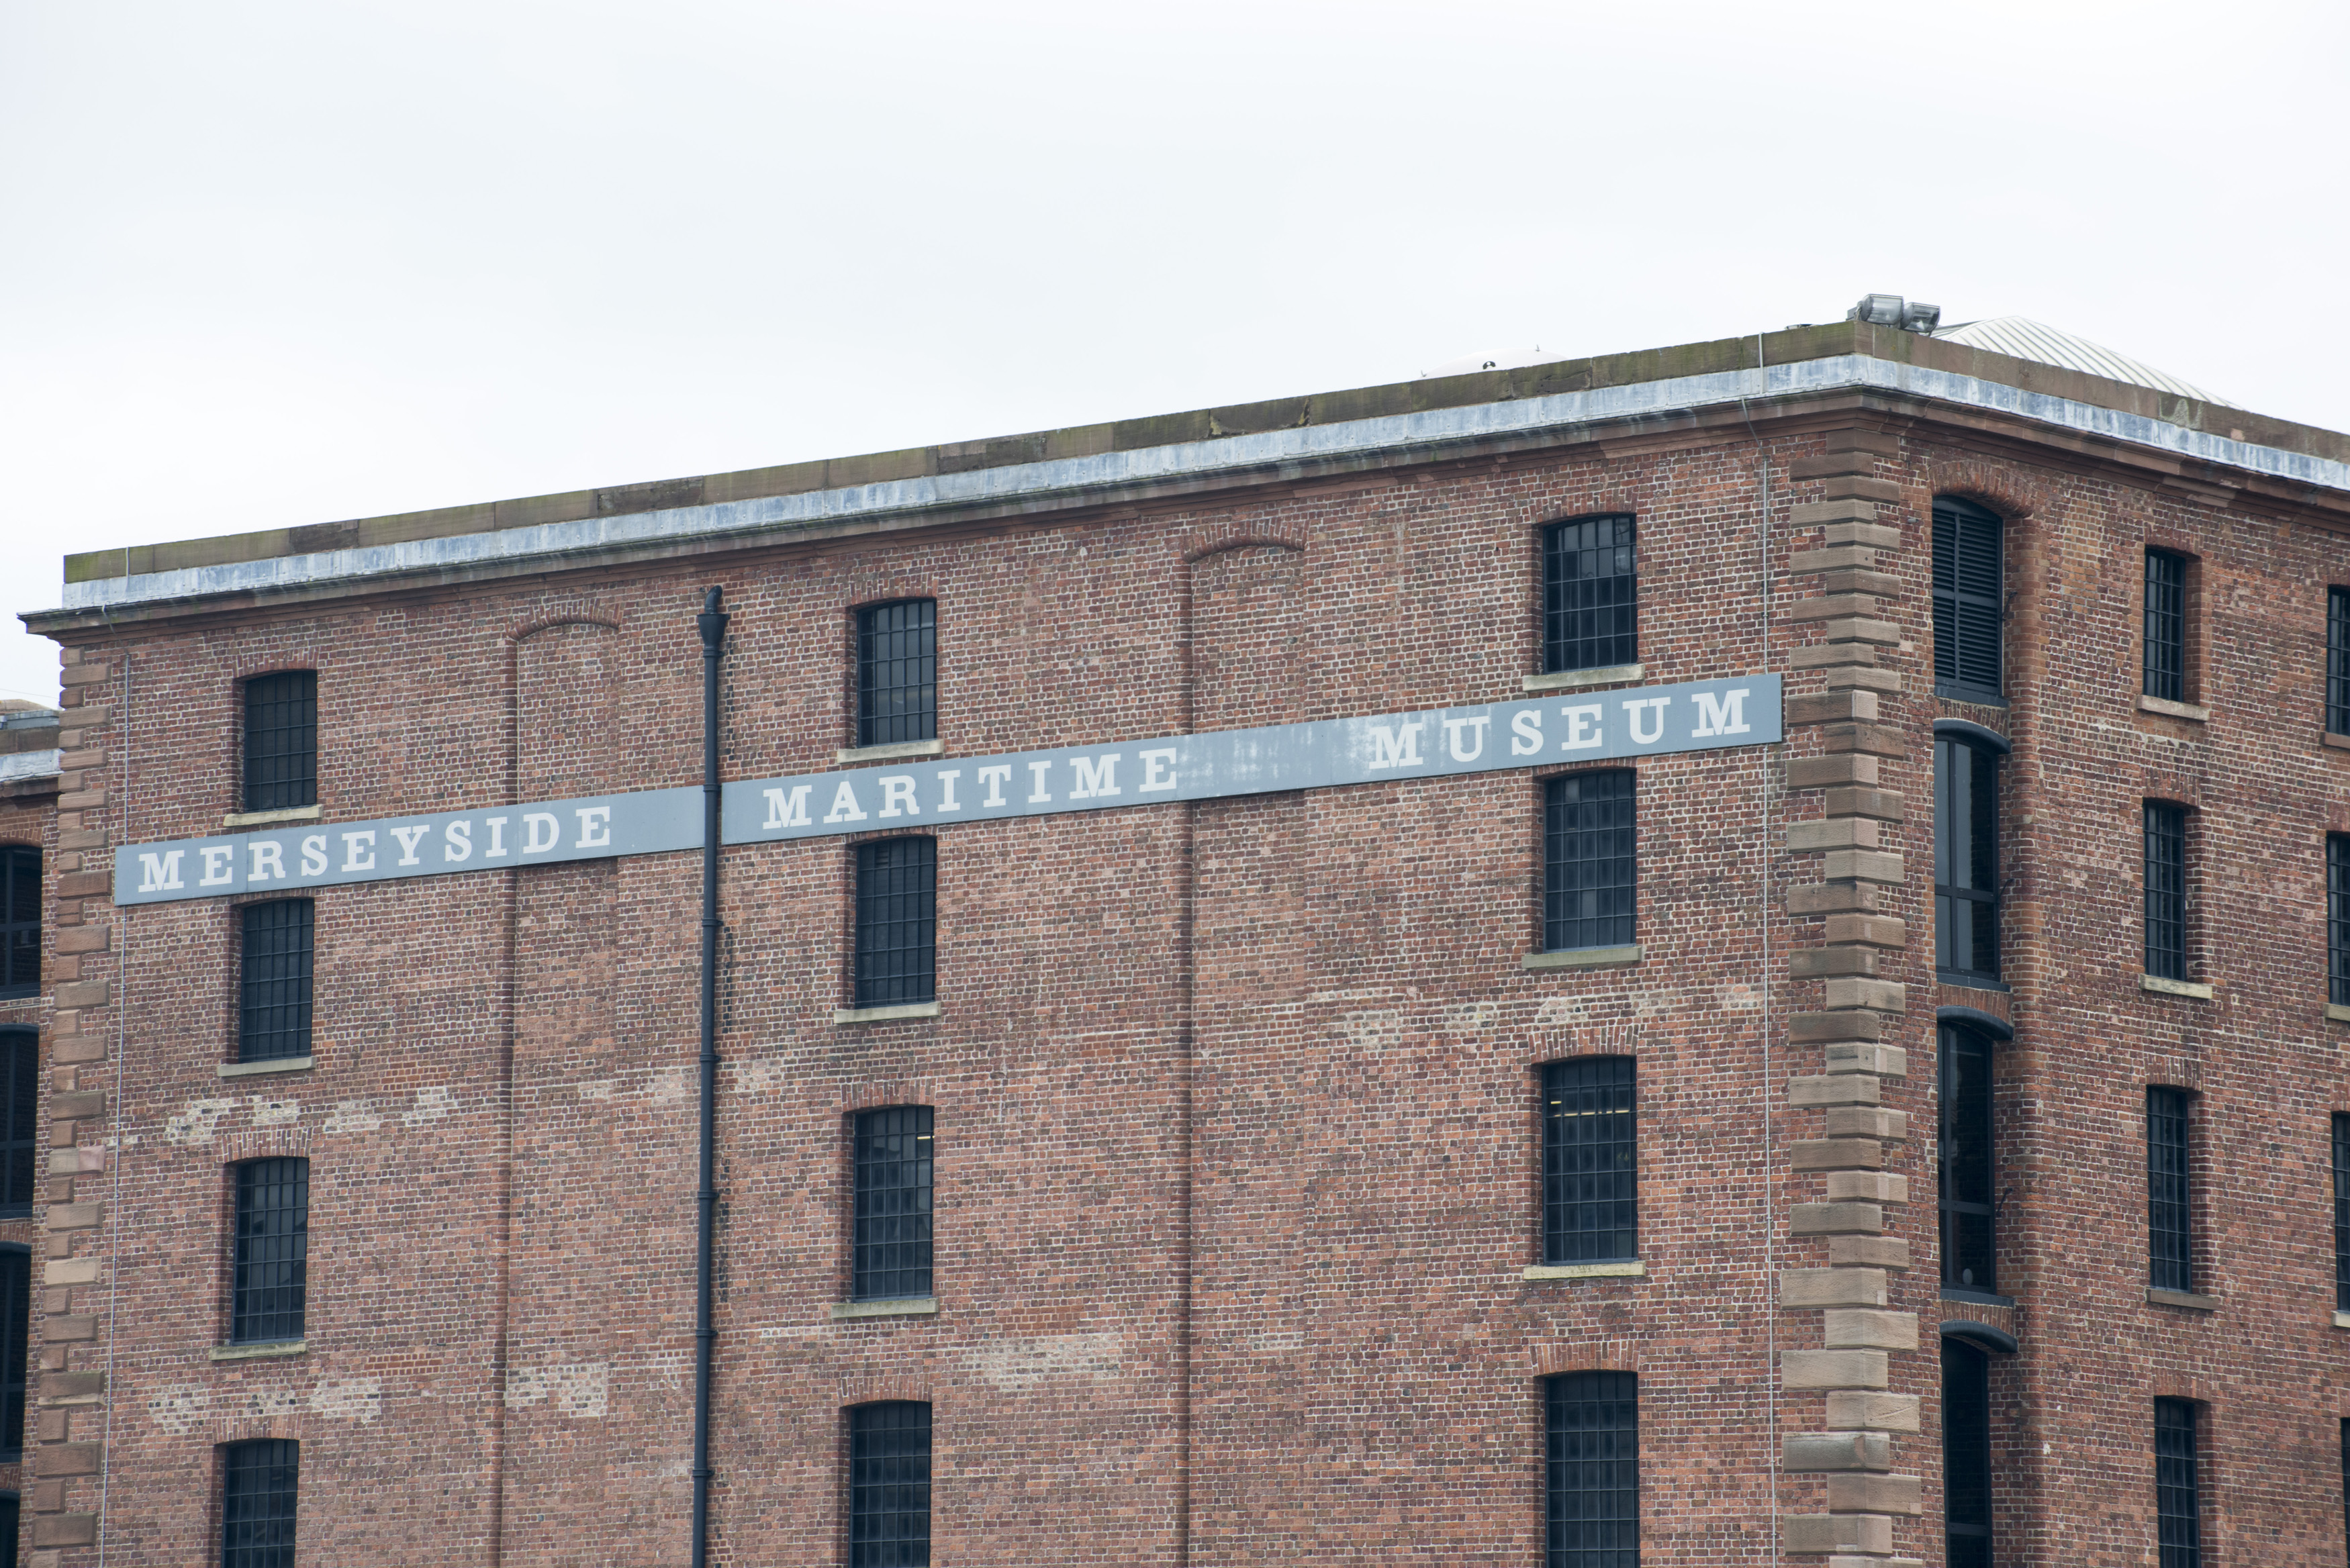 Back wall facing waterfront of Merseyside Maritime Museum building in Liverpool, United Kingdom